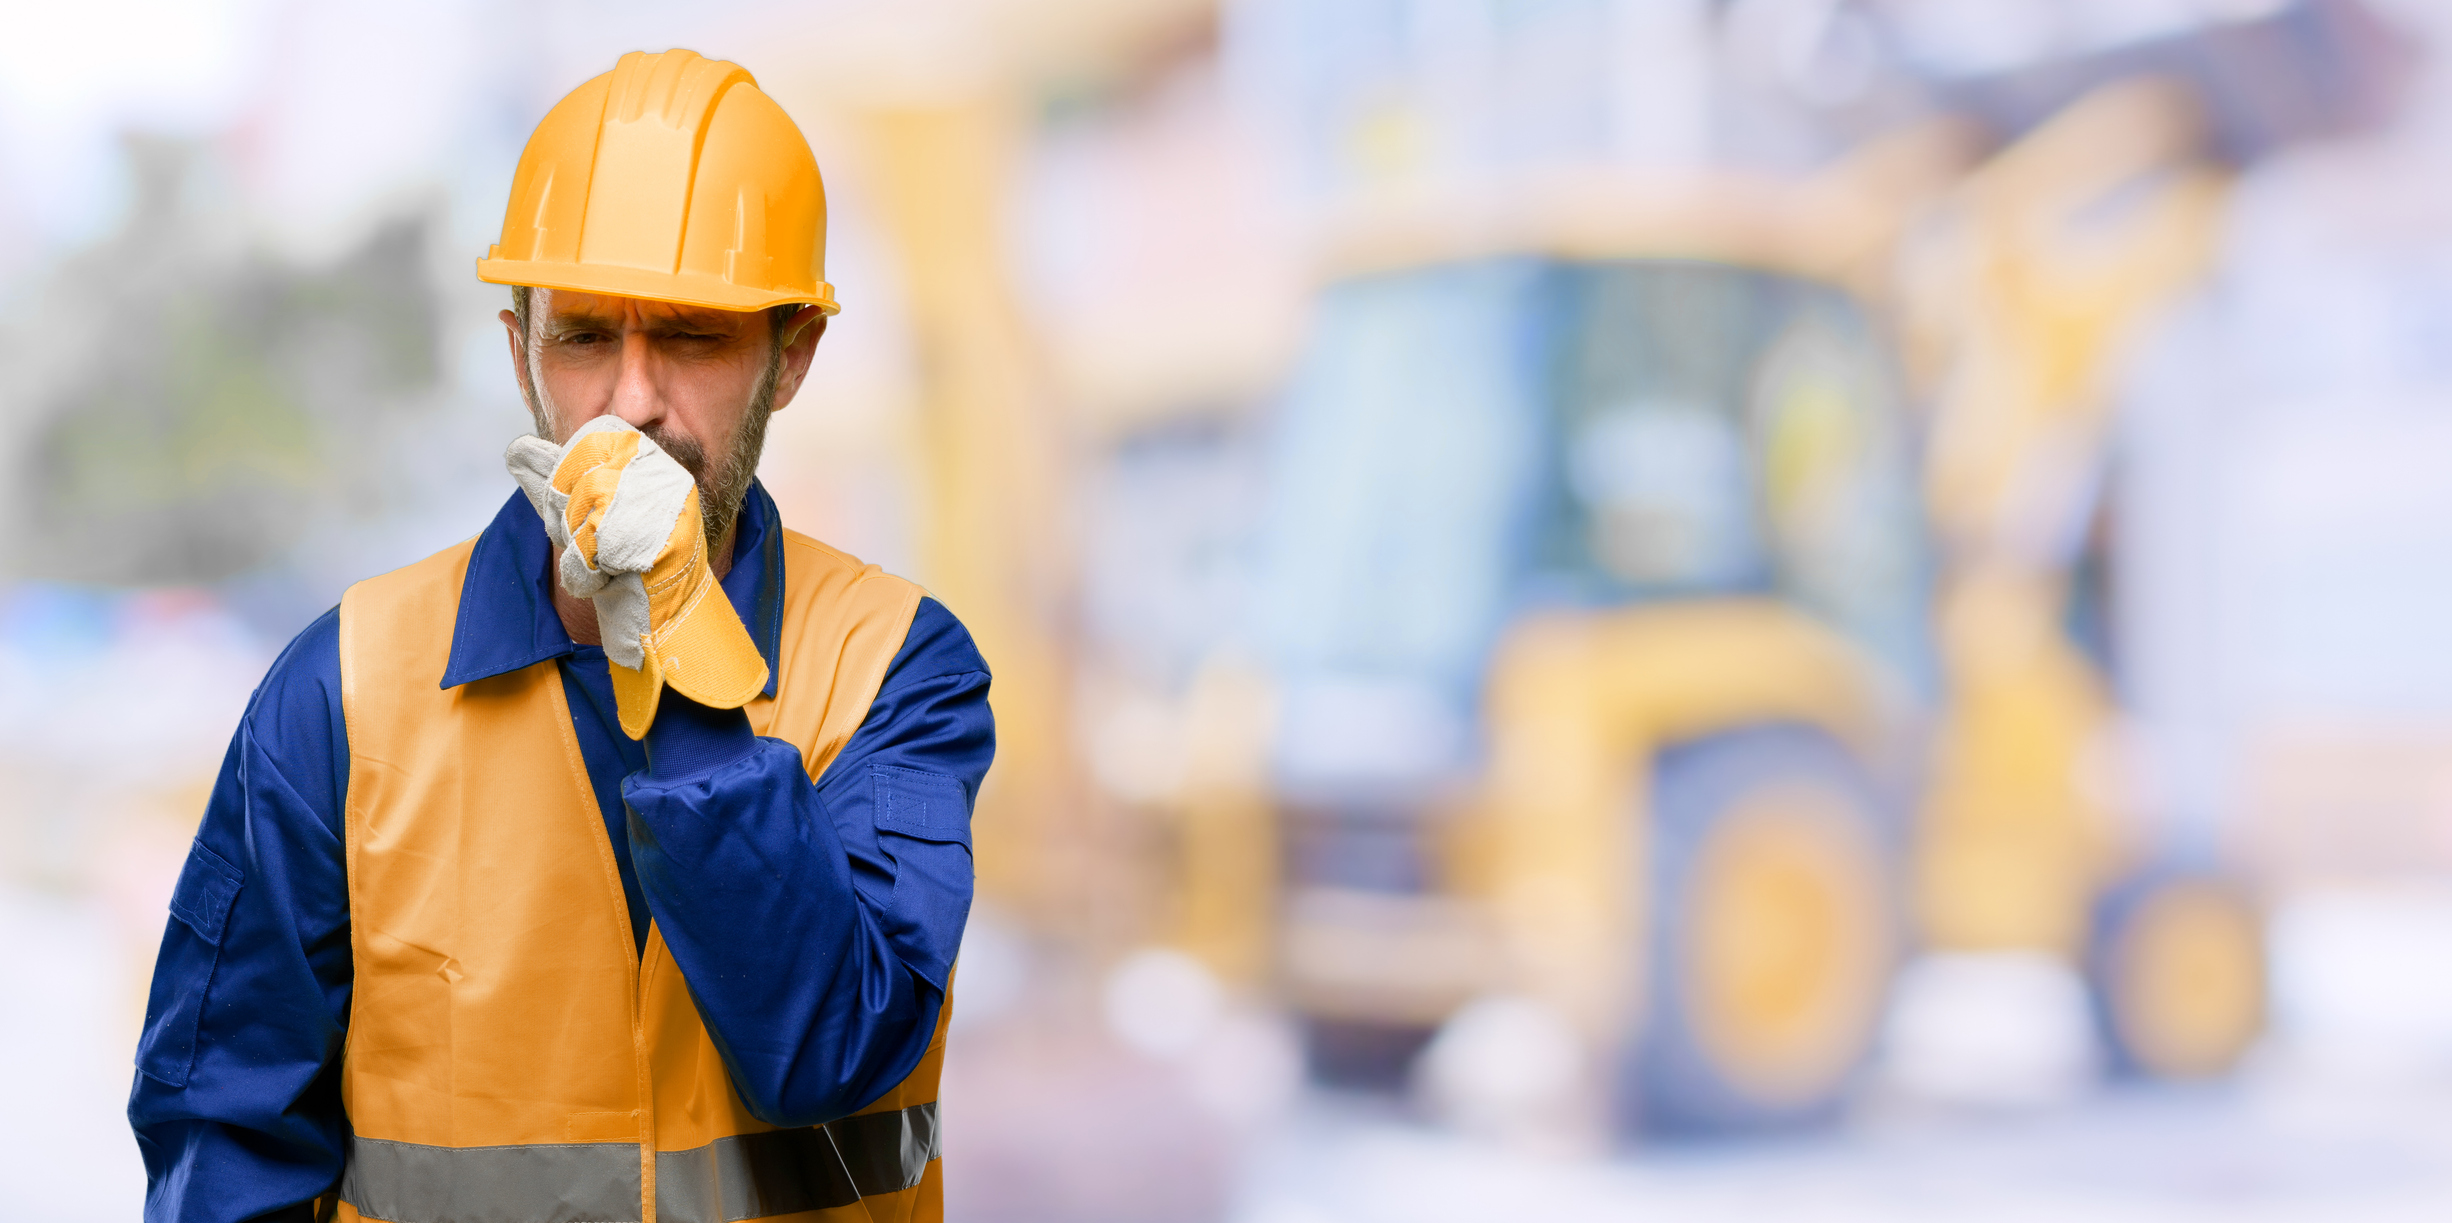 do I have to use sick time for worker's compensation